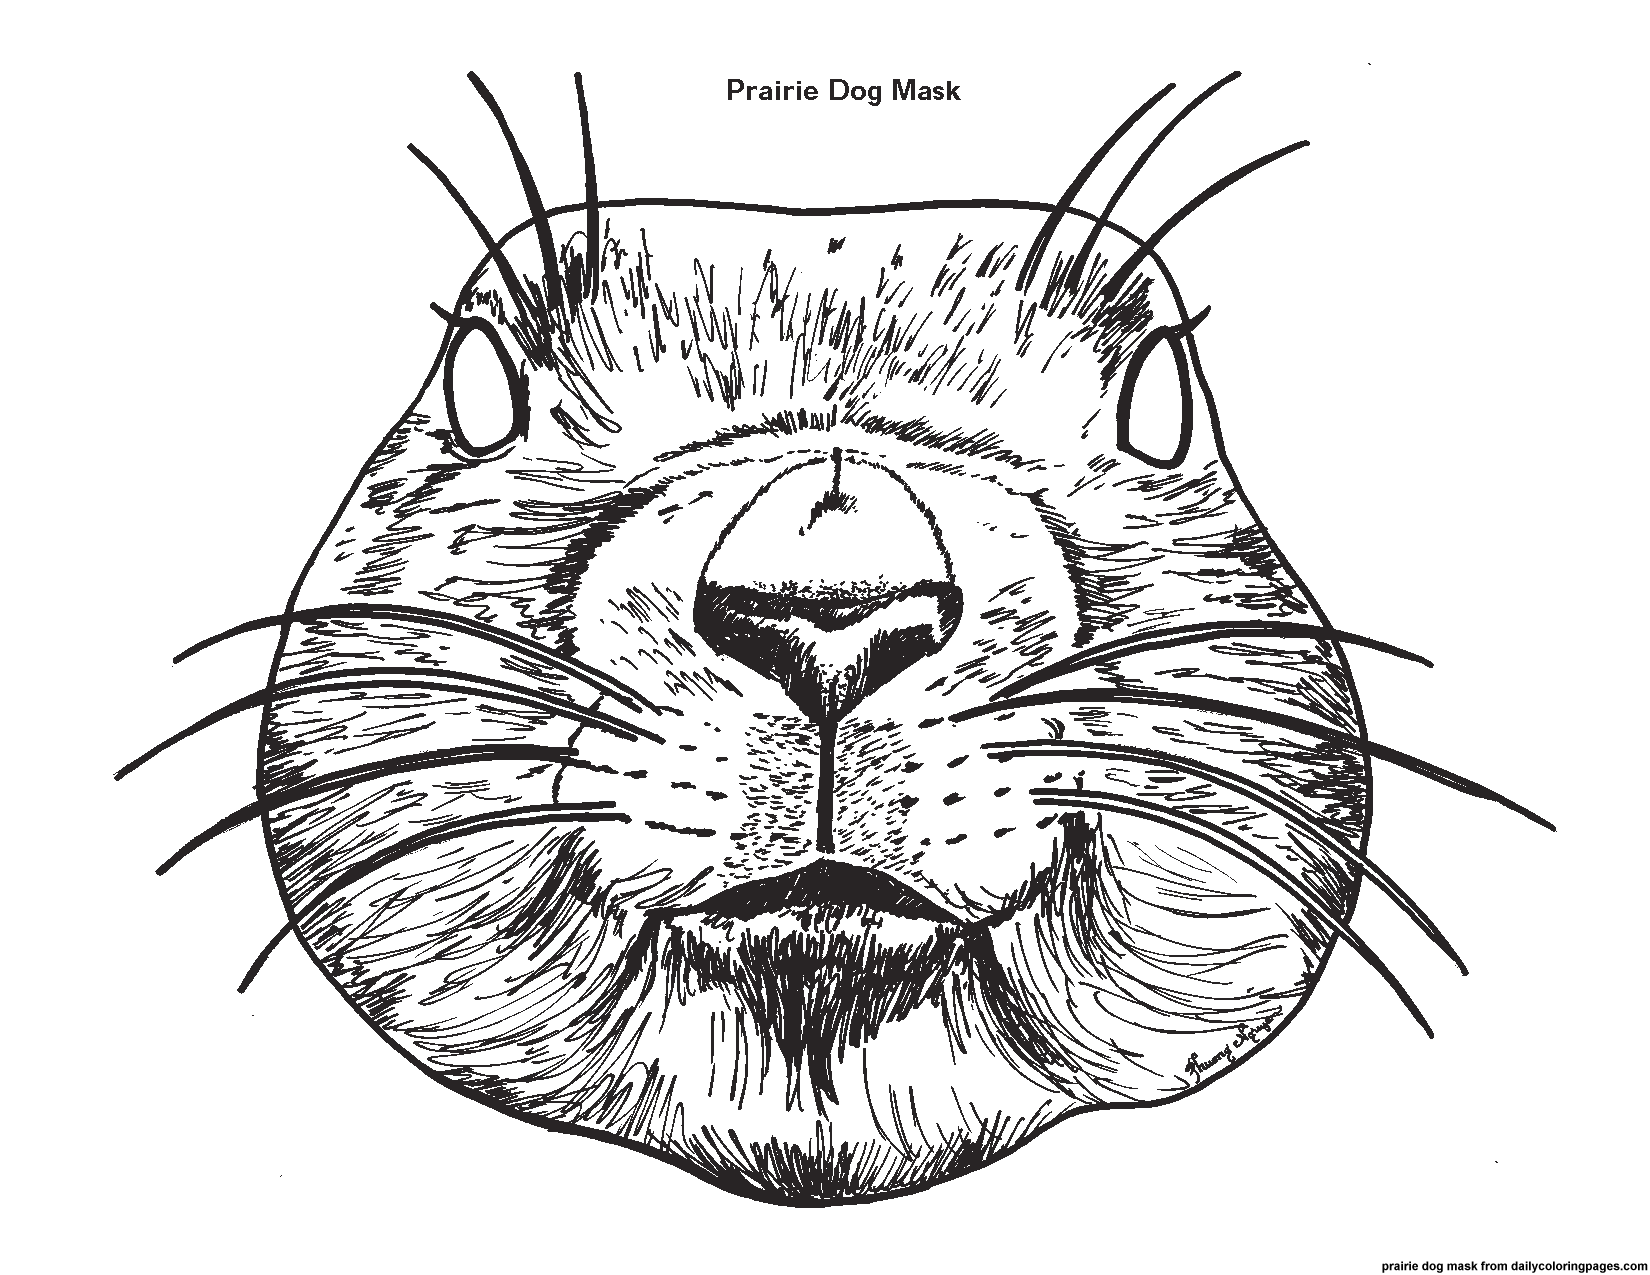 Coloring pages of a prairie dog - a-k-b.info